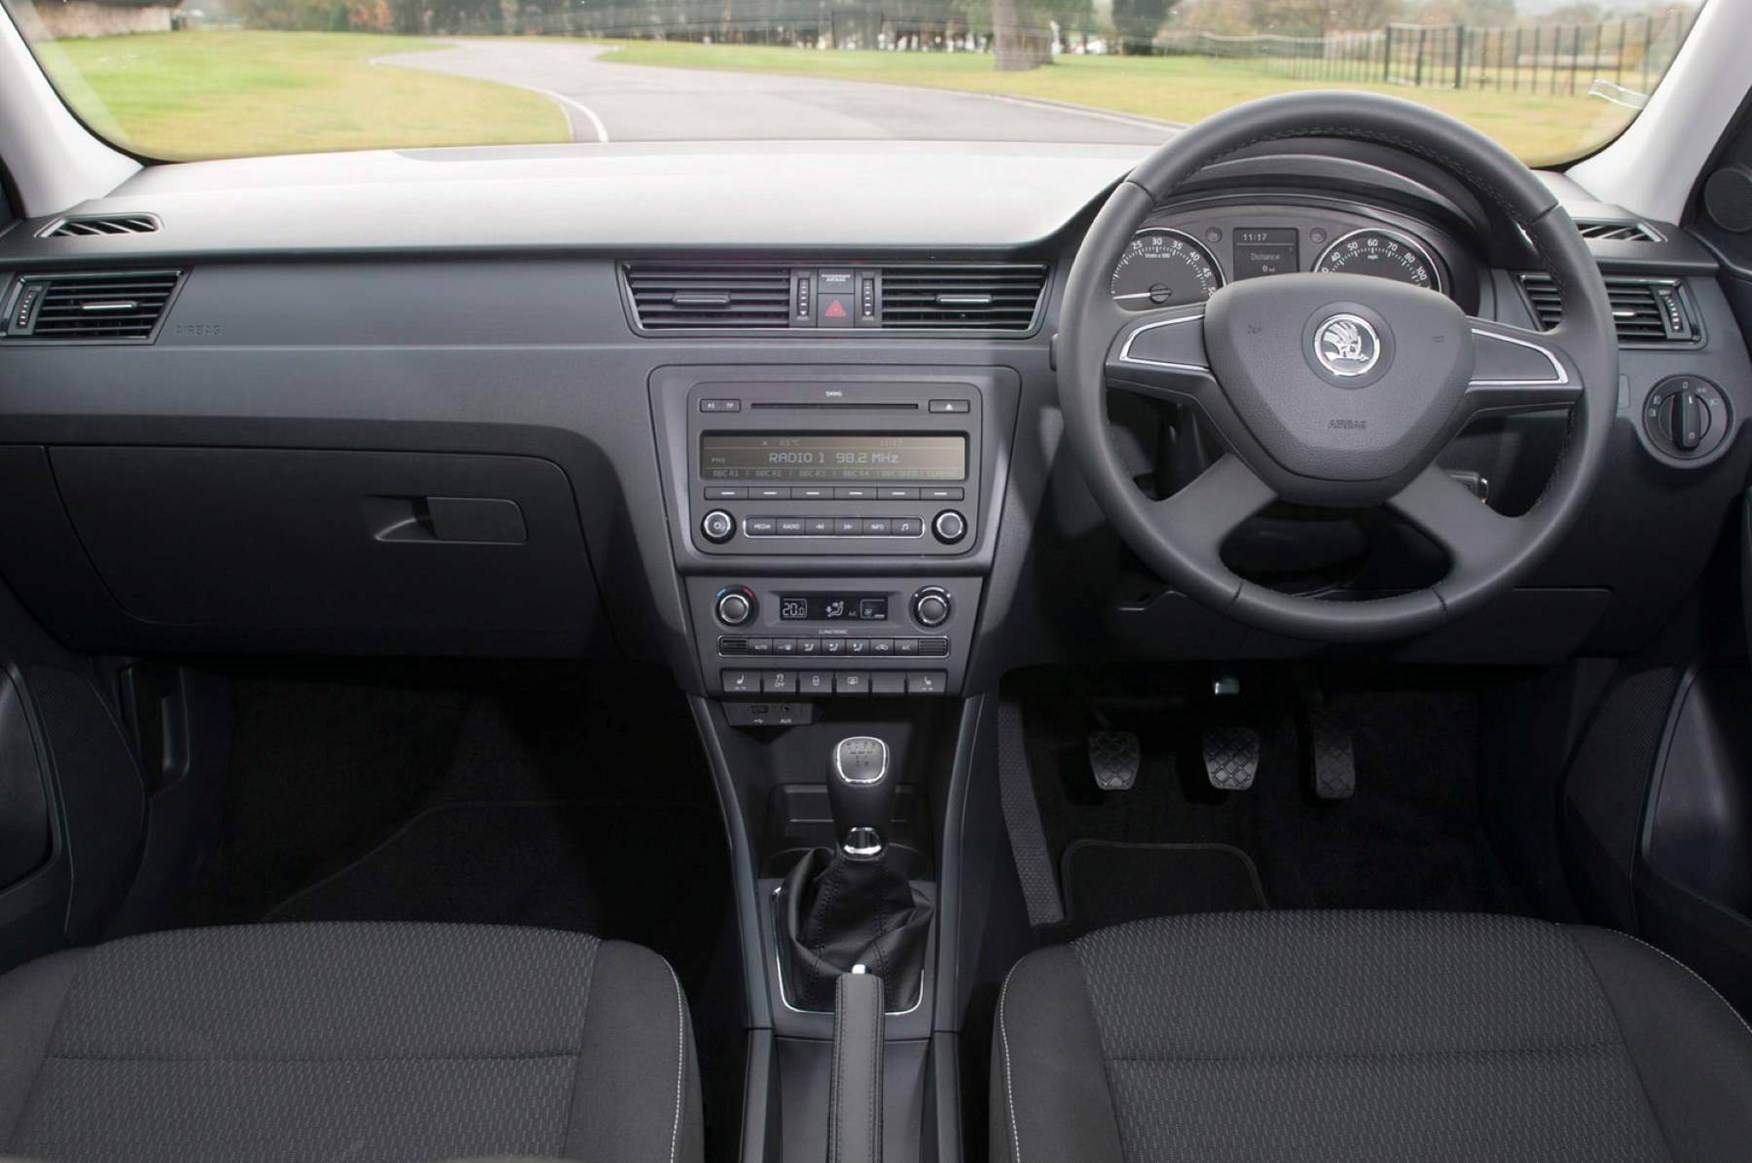 2012 Skoda Rapid Hatchback dashboard